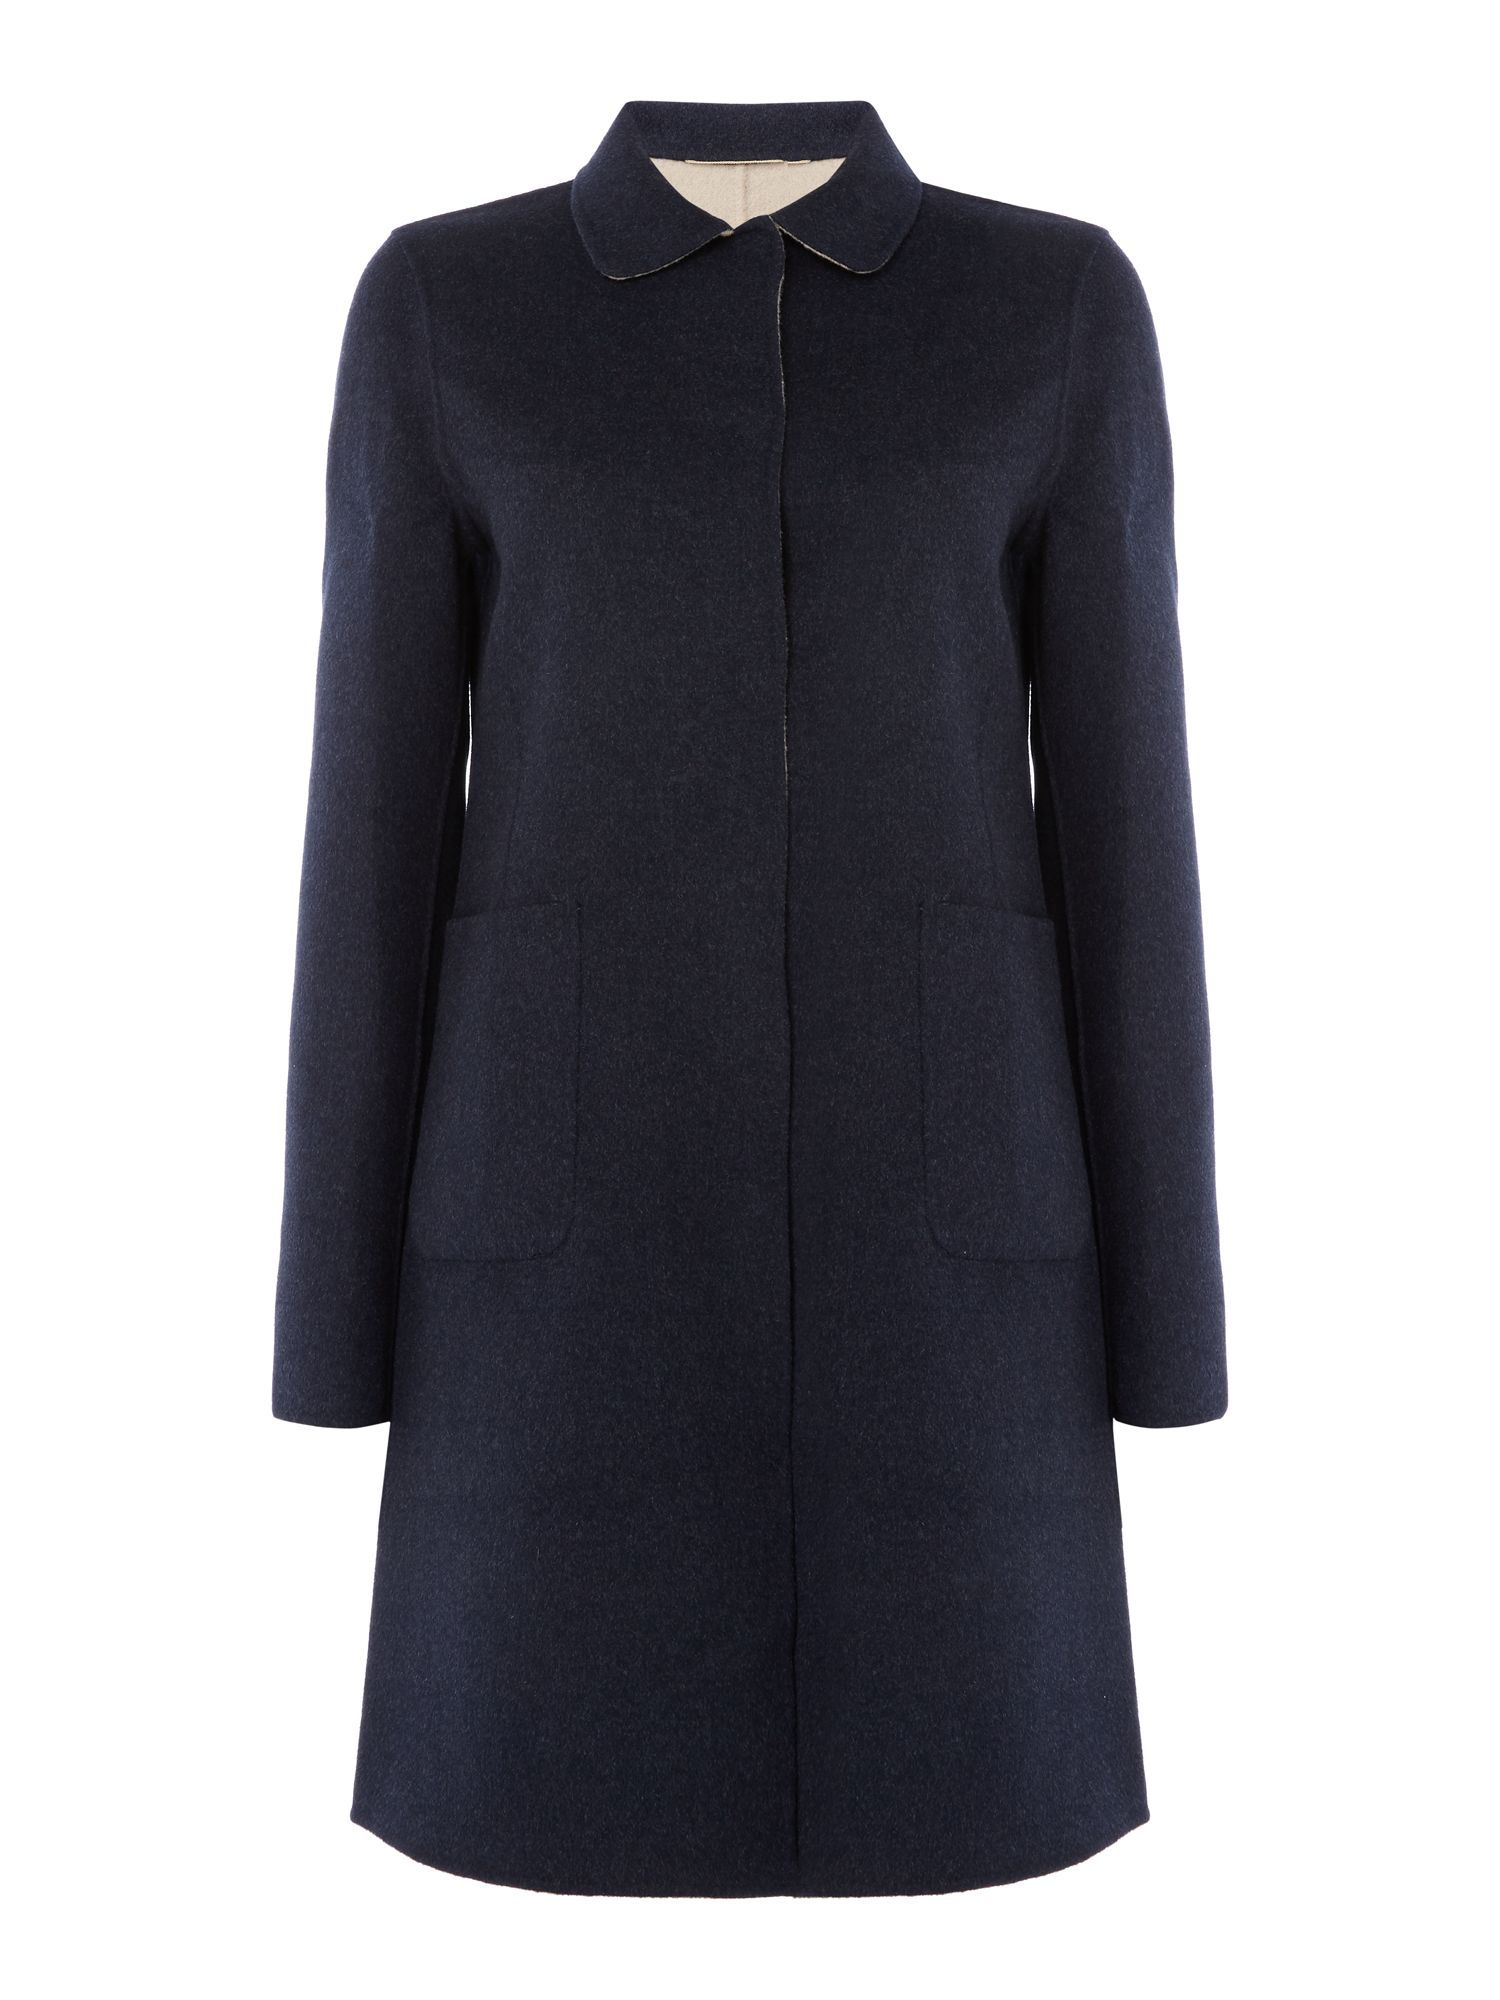 Max Mara Weekend Stecca Reversible Long Sleeve Wool Coat, Ultramarine